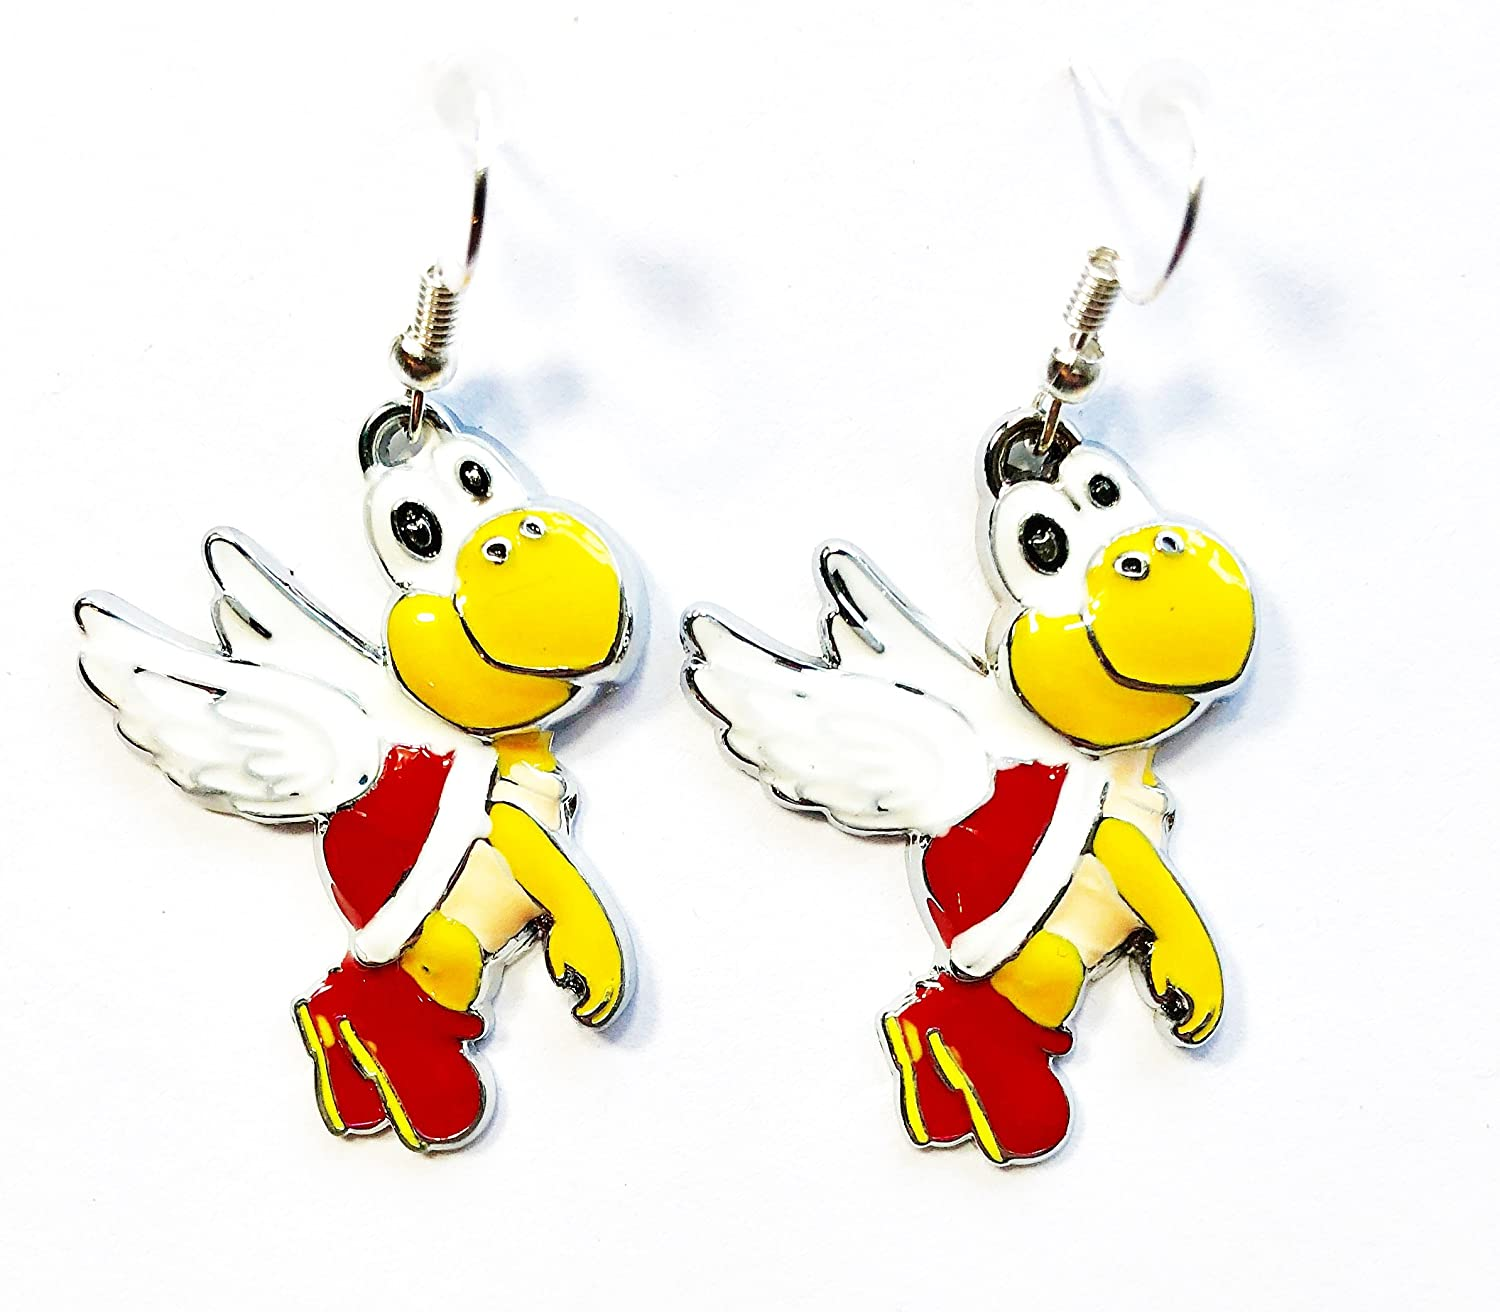 2 Pairs Super Mario Bros inspired Yoshi /& Koopa Trooper Character Dangle Hook Earrings With Gift Box